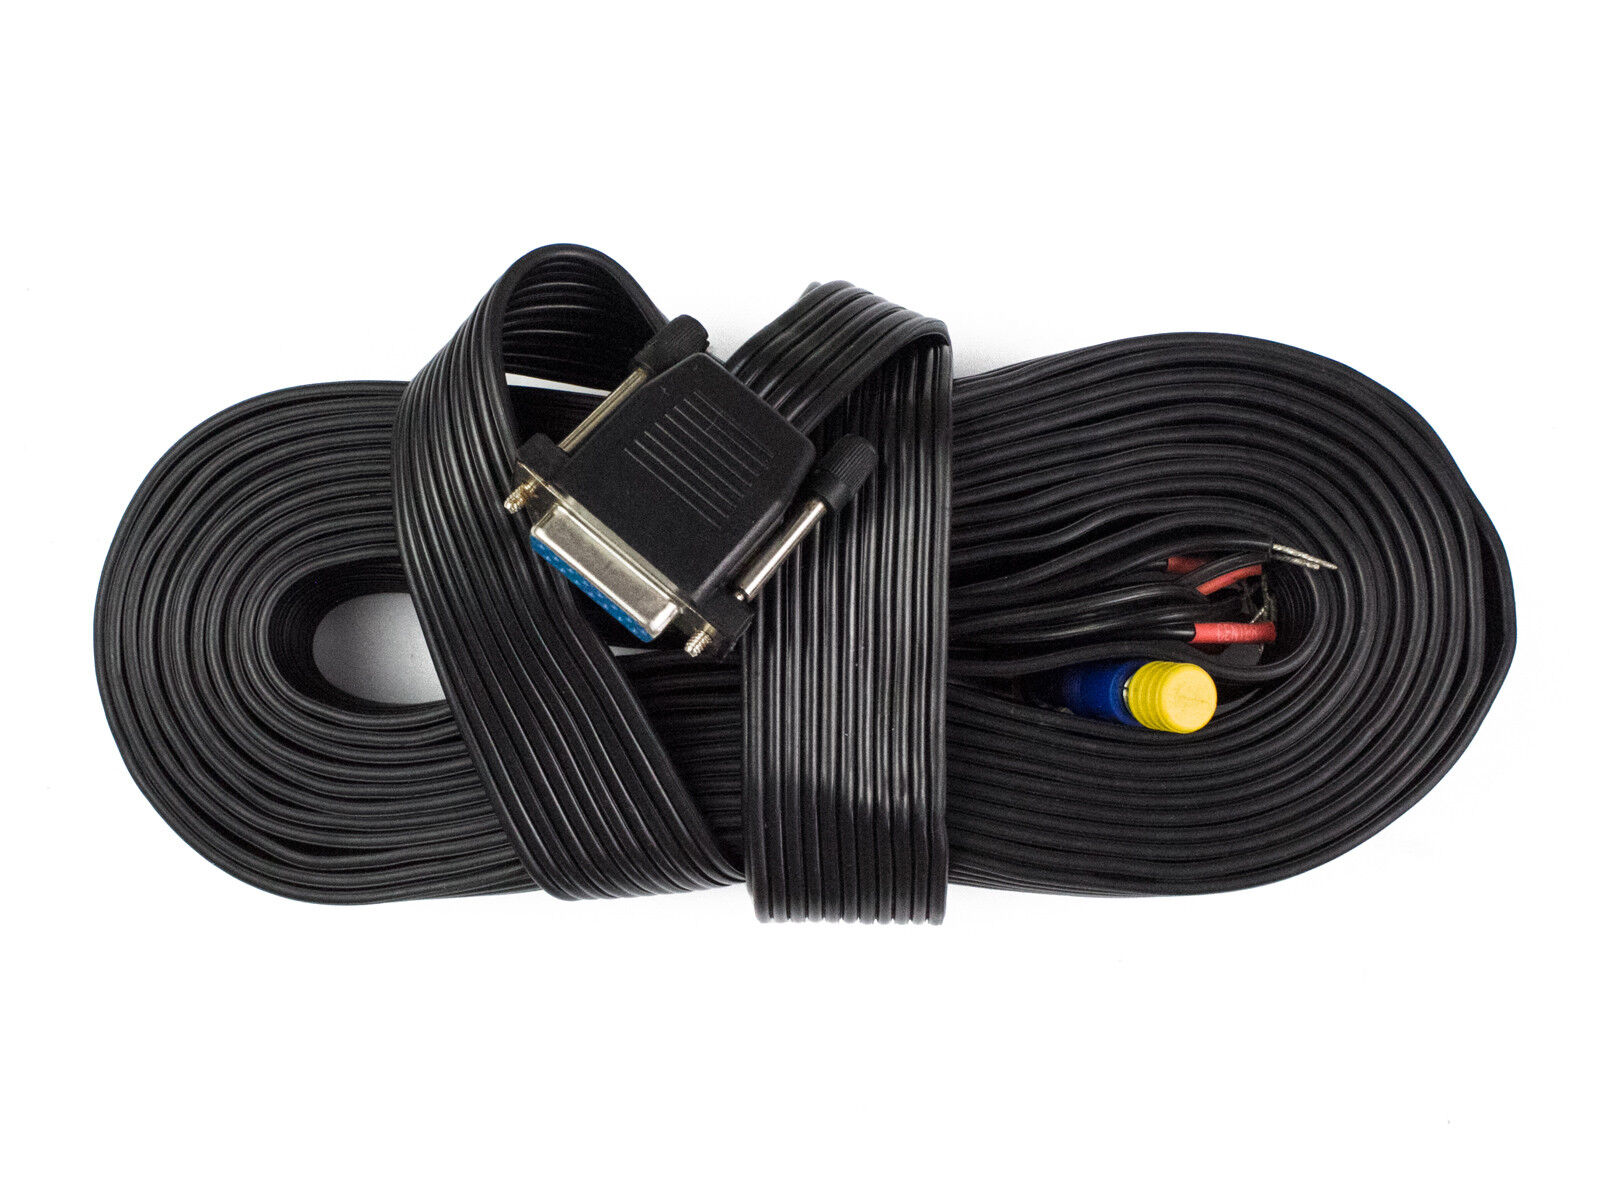 Bose Acoustimass 6 10 15 System Input Cable Connector Link Wires Sub ...